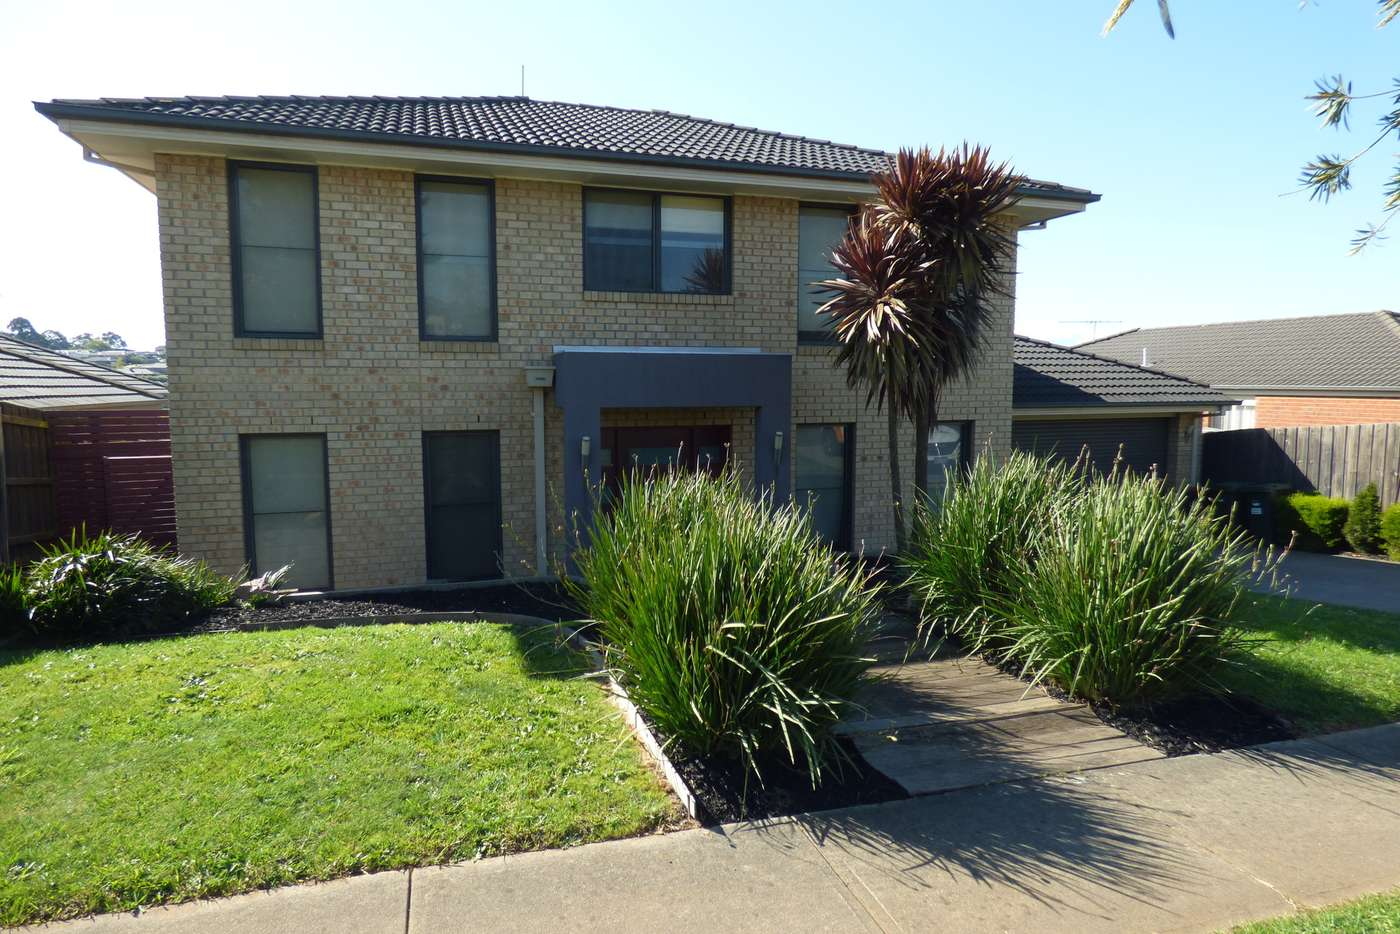 Main view of Homely house listing, 57 Walker Drive, Drouin VIC 3818